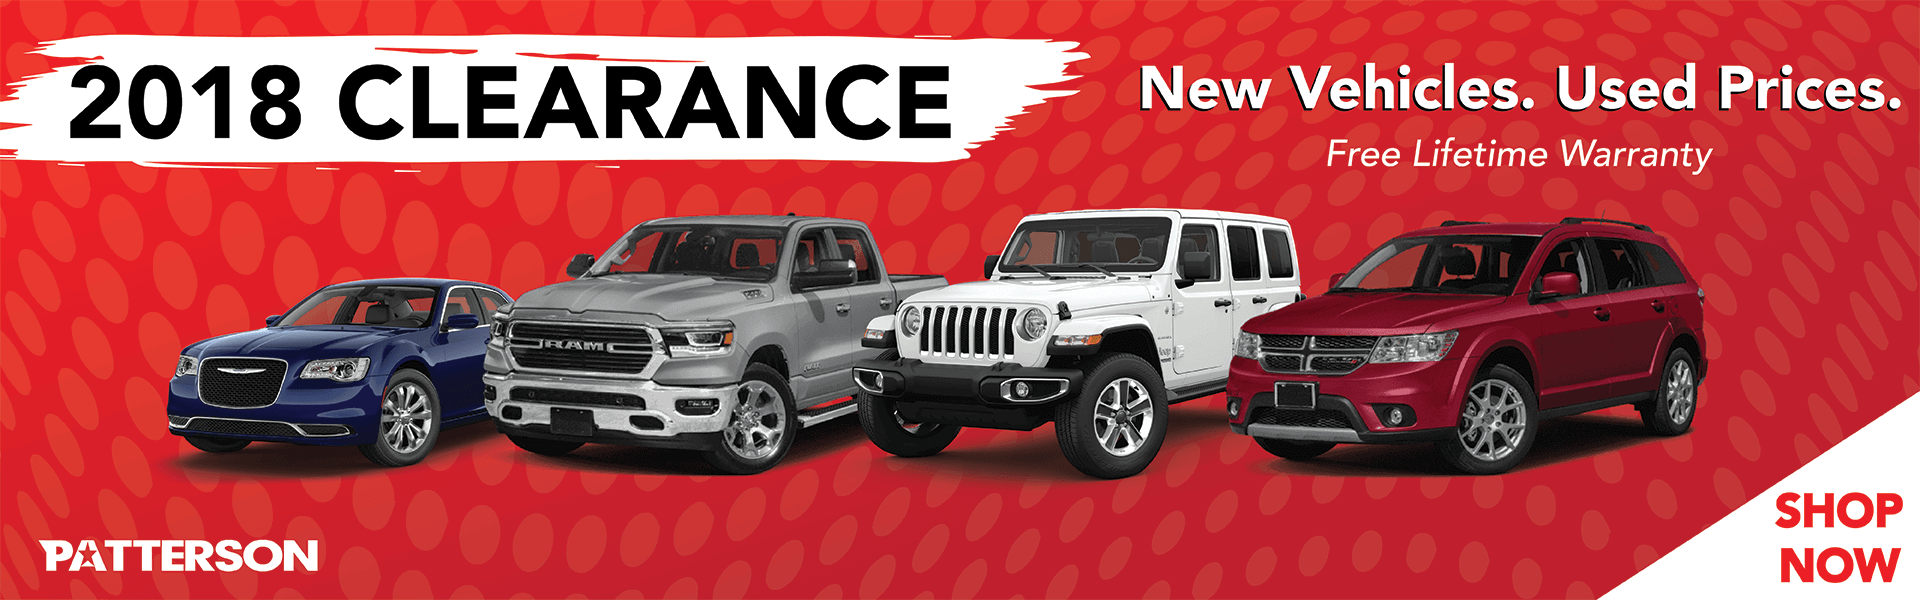 2018 Clearance Event